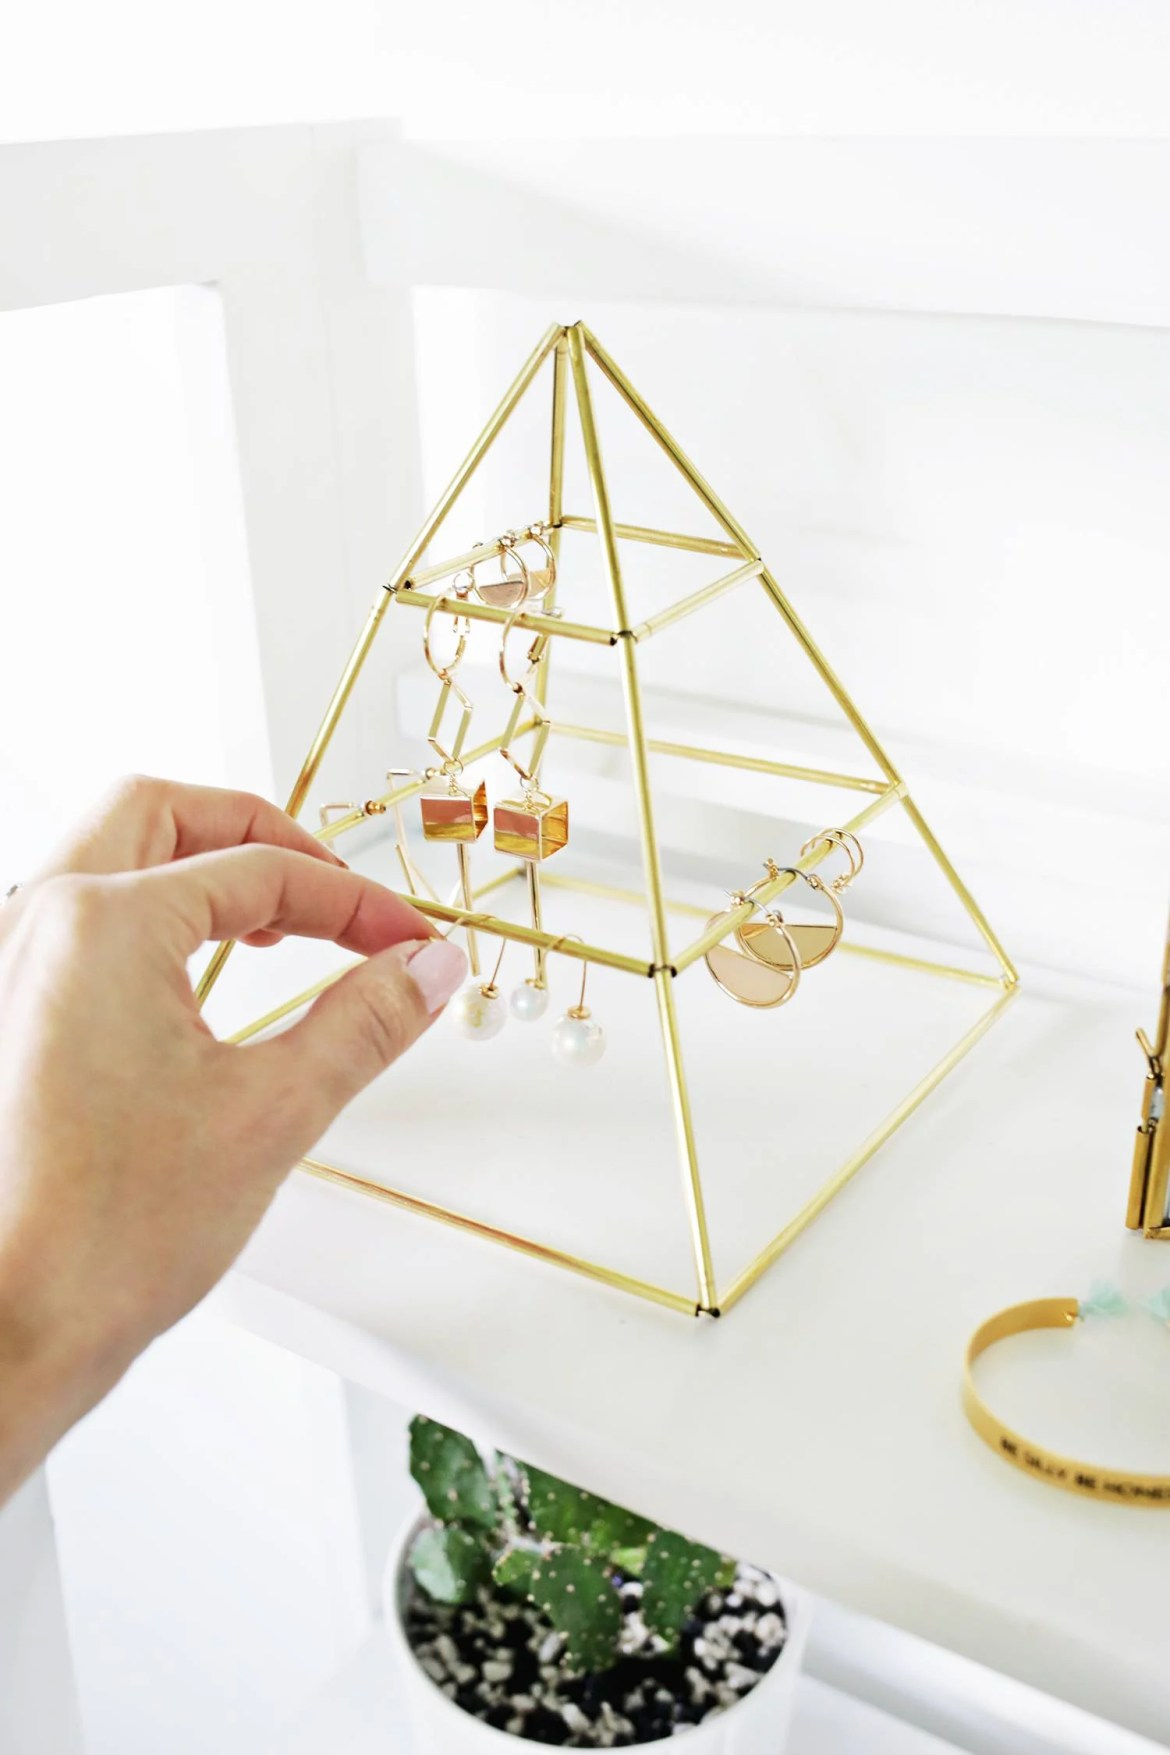 Brass pyramid earring display